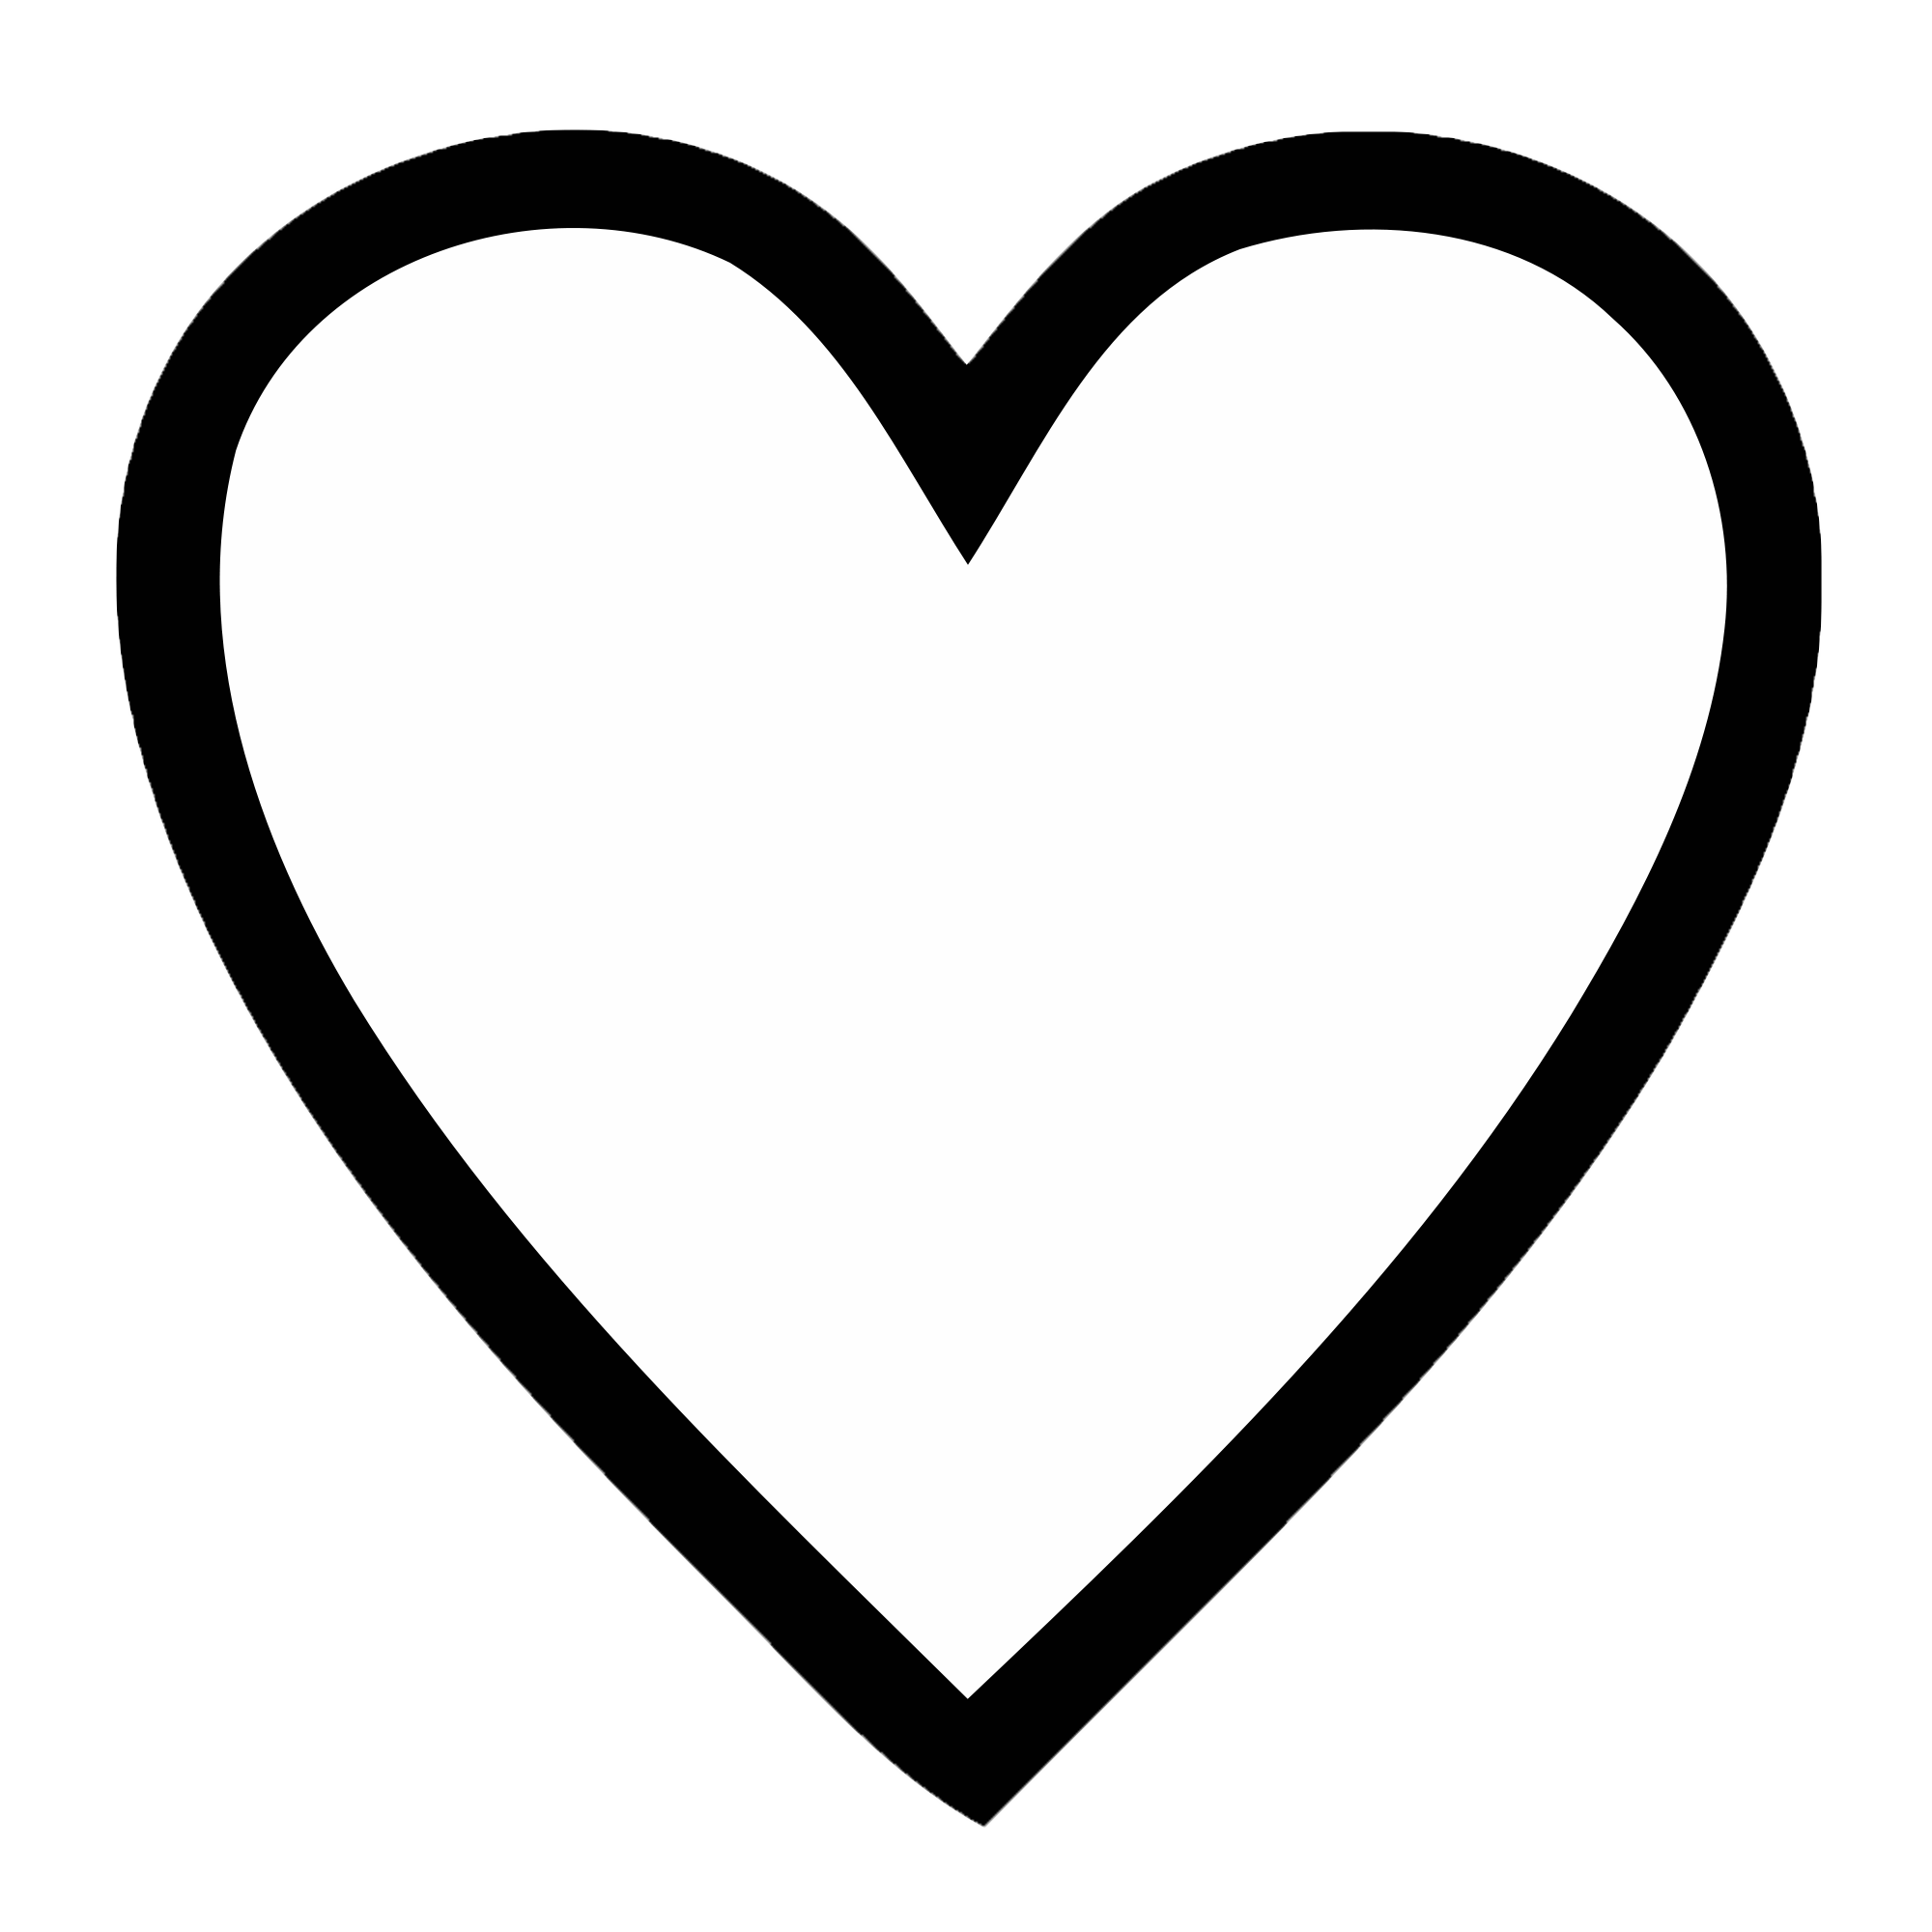 https://upload.wikimedia.org/wikipedia/commons/1/1e/Heart-SG2001-transparent.png